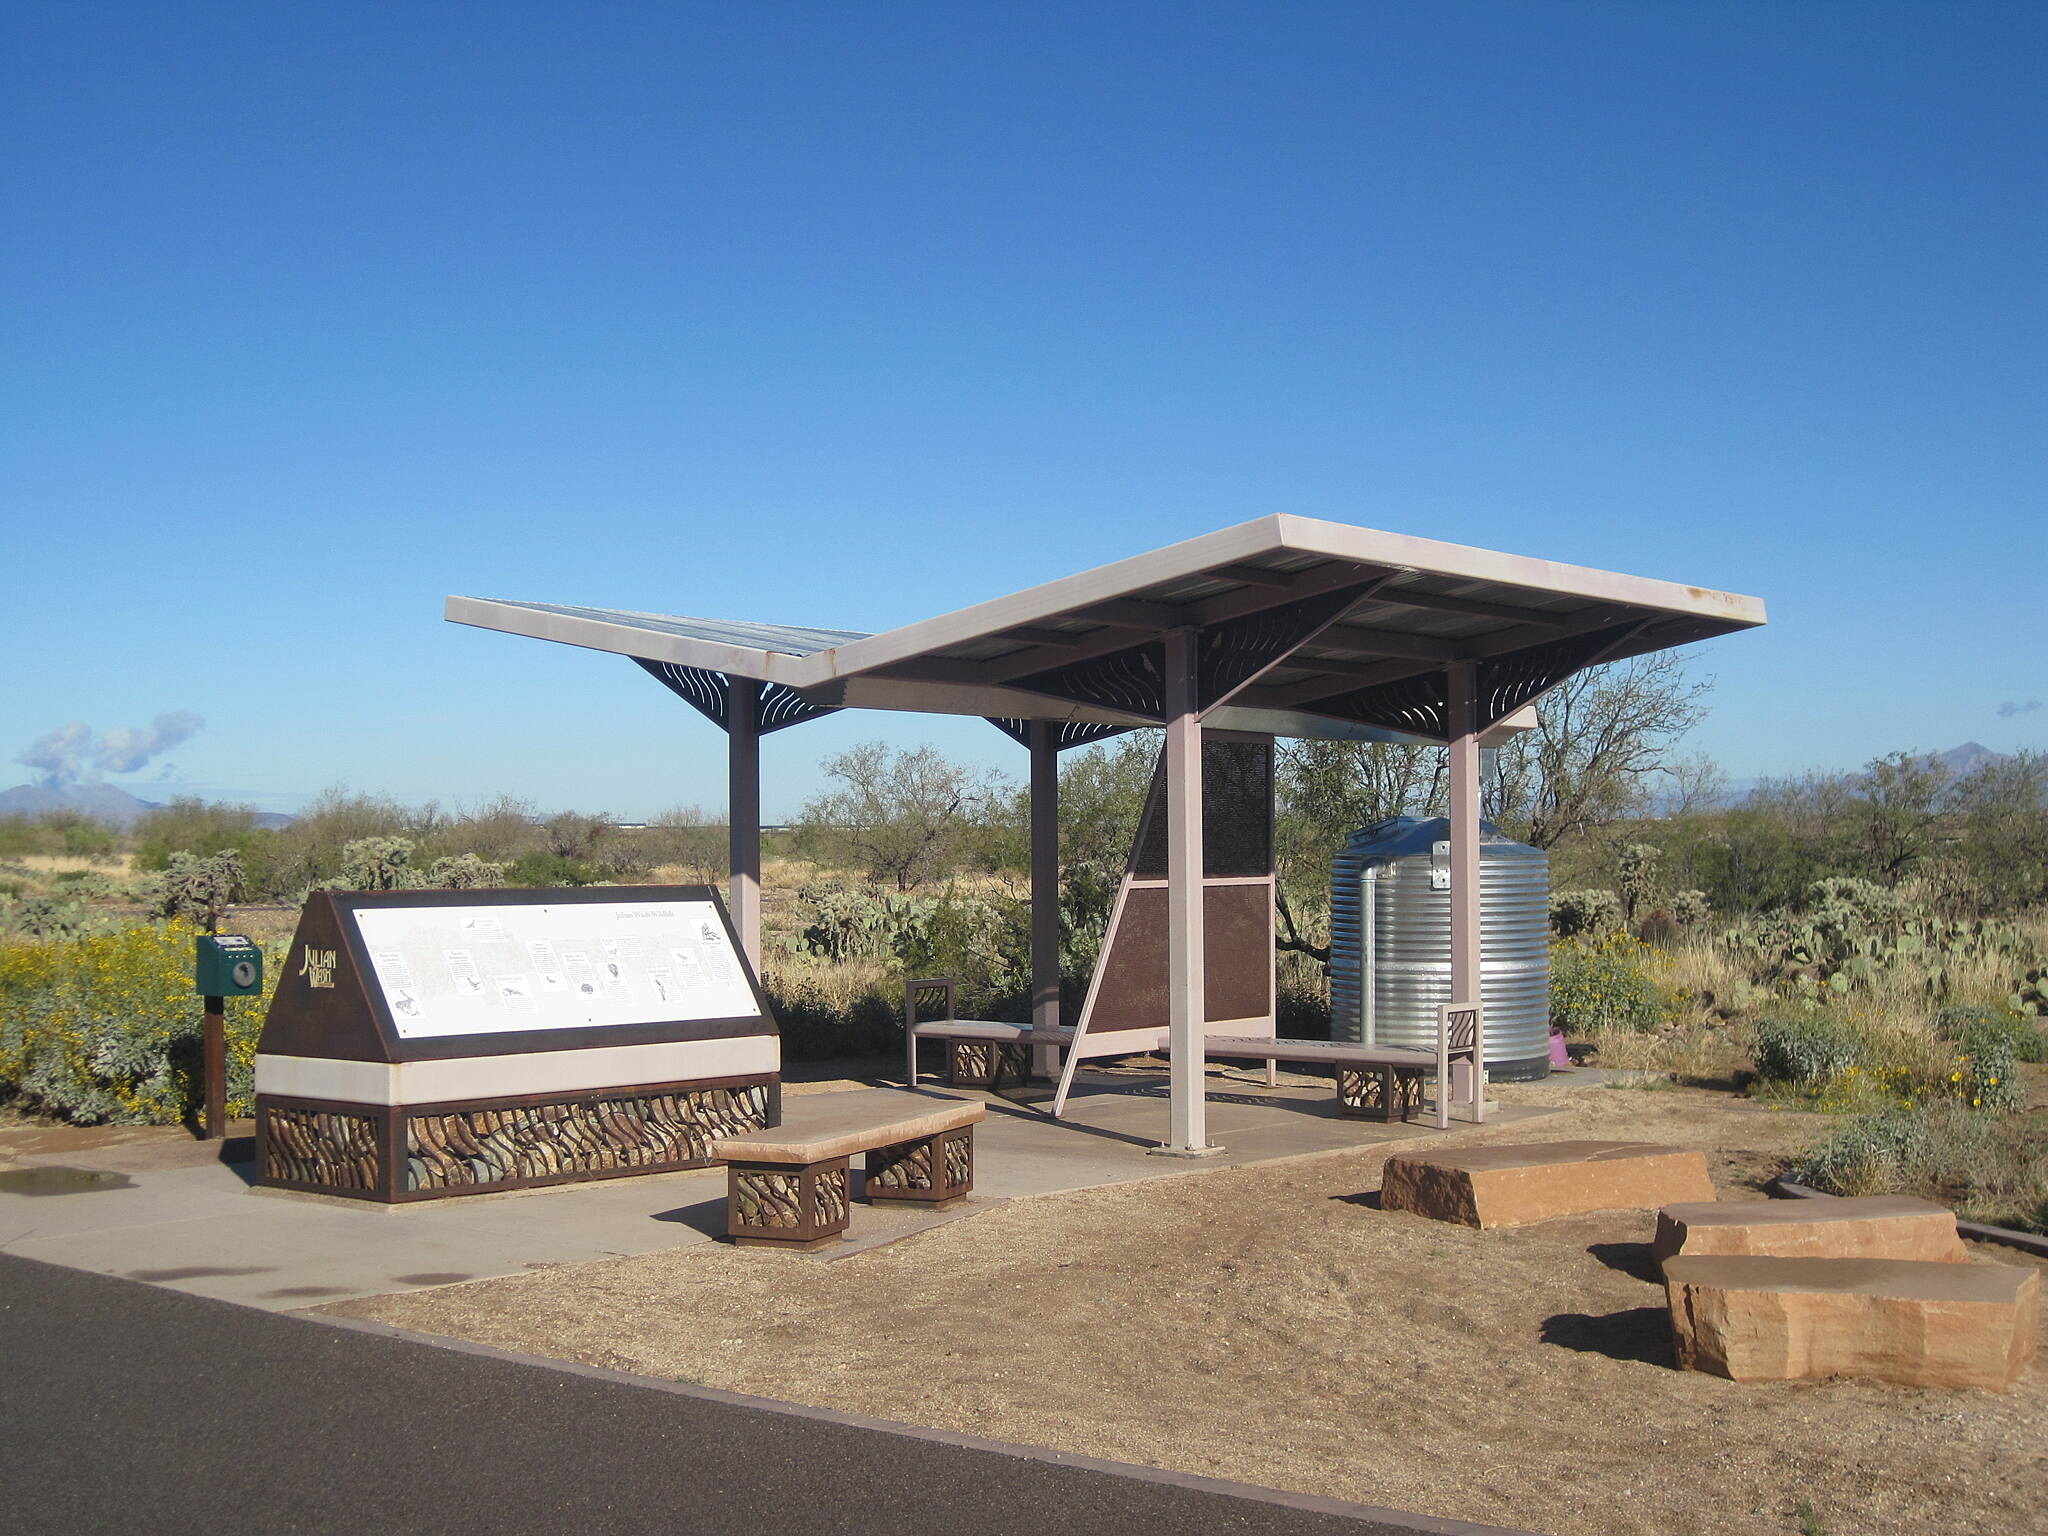 Julian Wash Greenway Rest Area